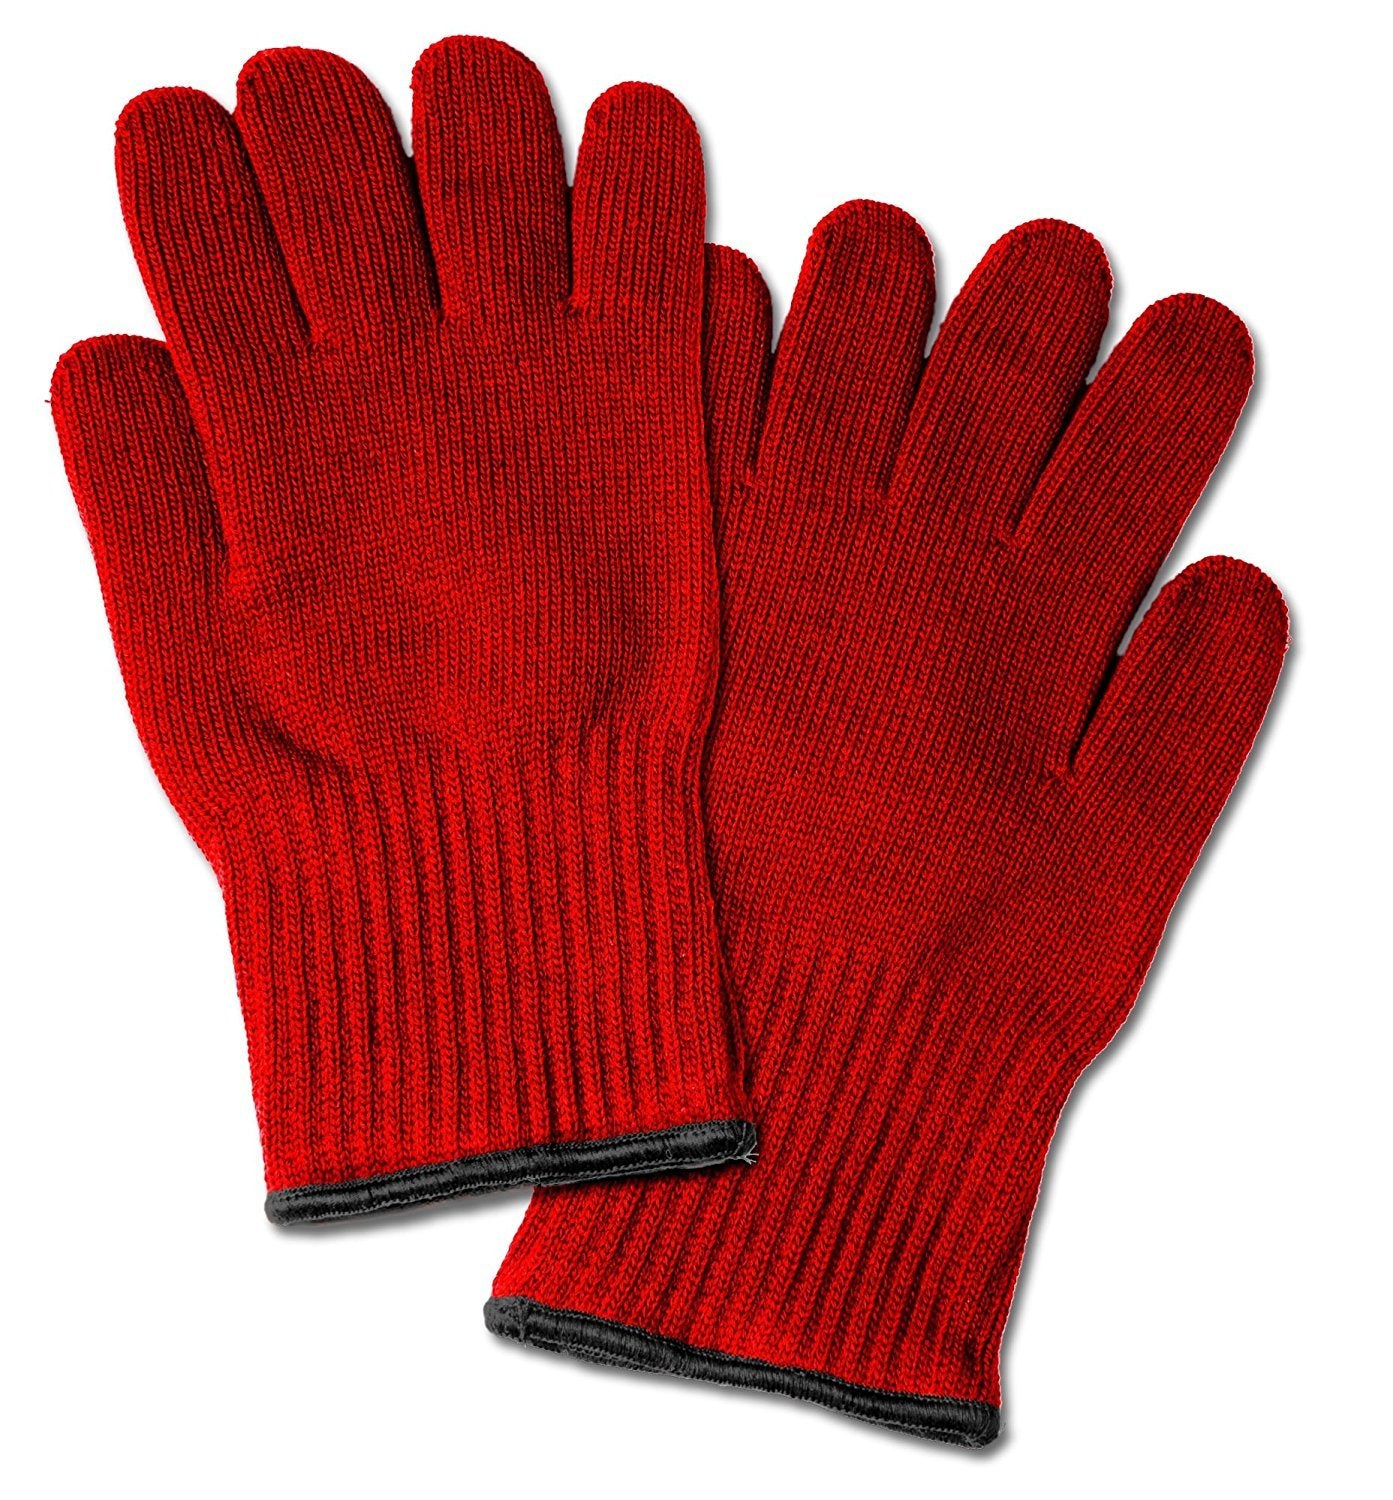 2 Extra Thick Oven Gloves - Red Heat Resistant Amazing Oven Mitt / Pot Holders